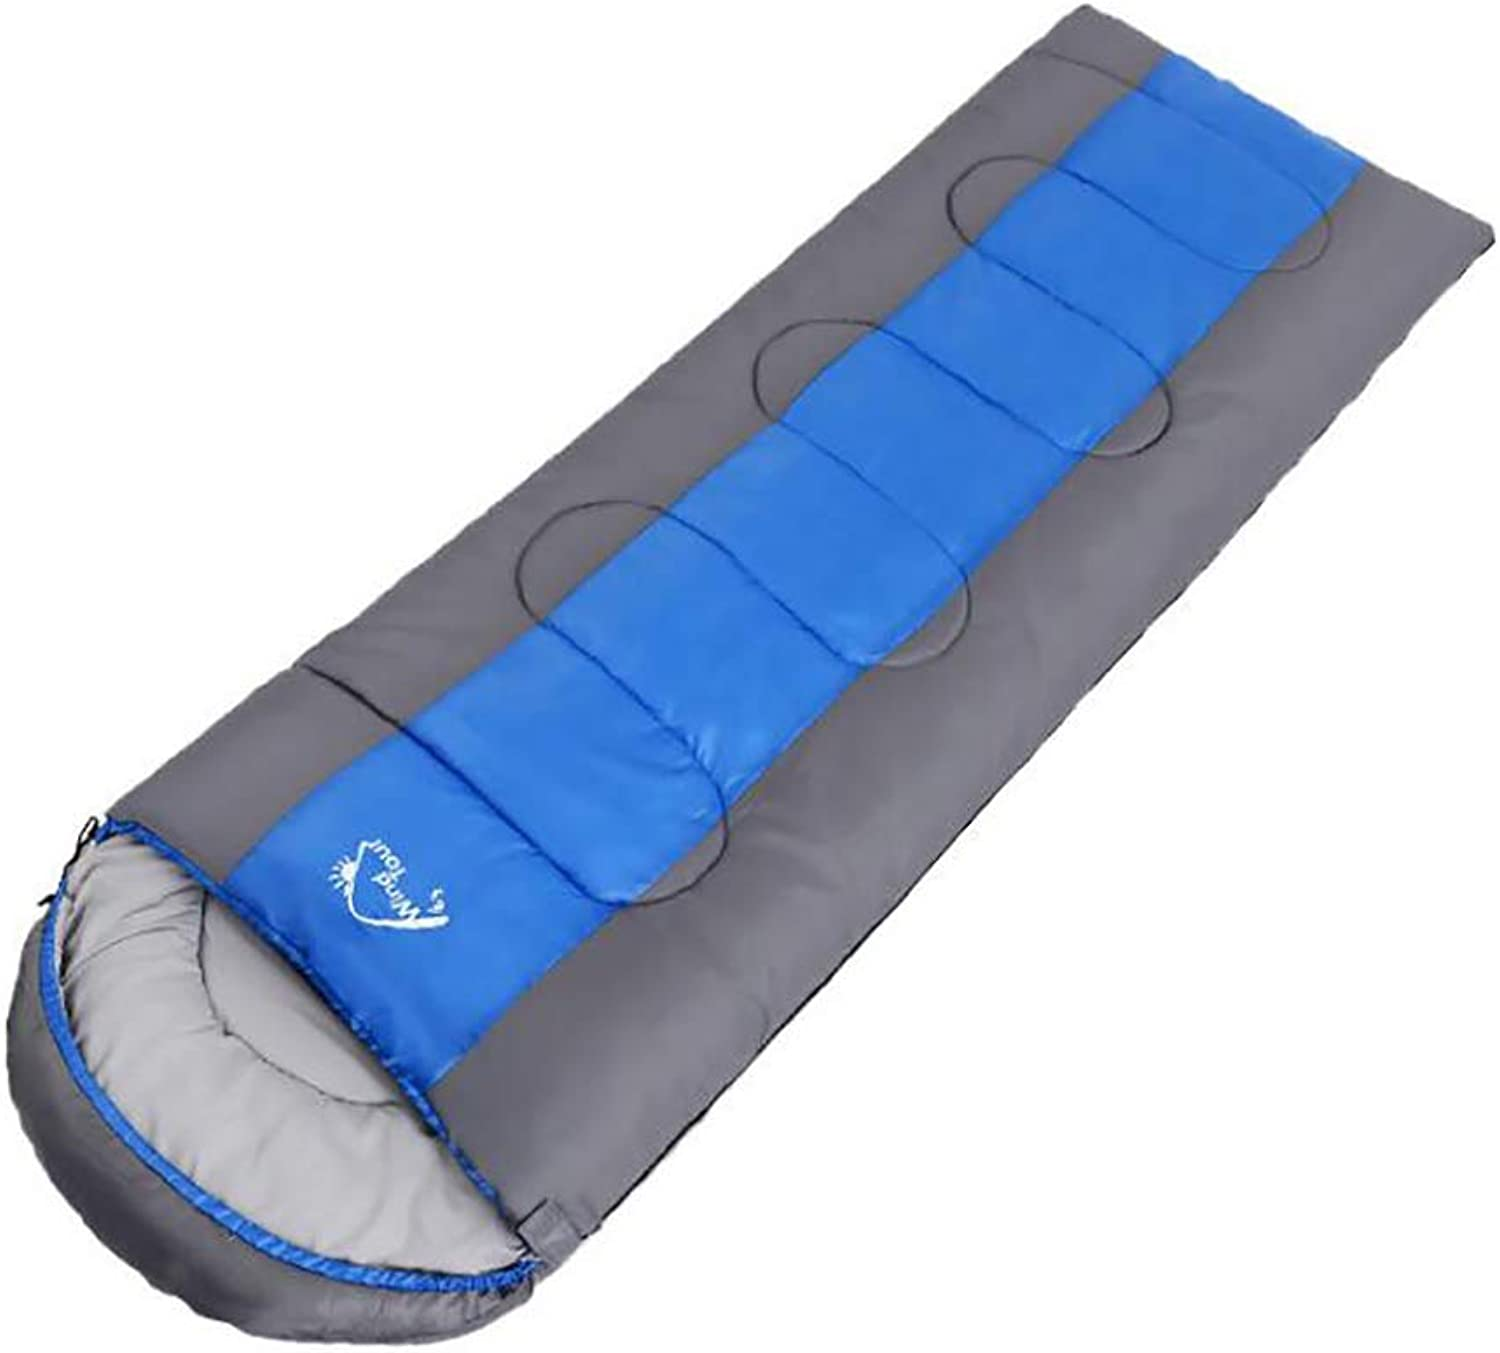 Adult Sleeping Bag Thick Warm to Suit The Four Seasons Outdoor Camping Travel Office Lunch Break Home Guest Hotel Car